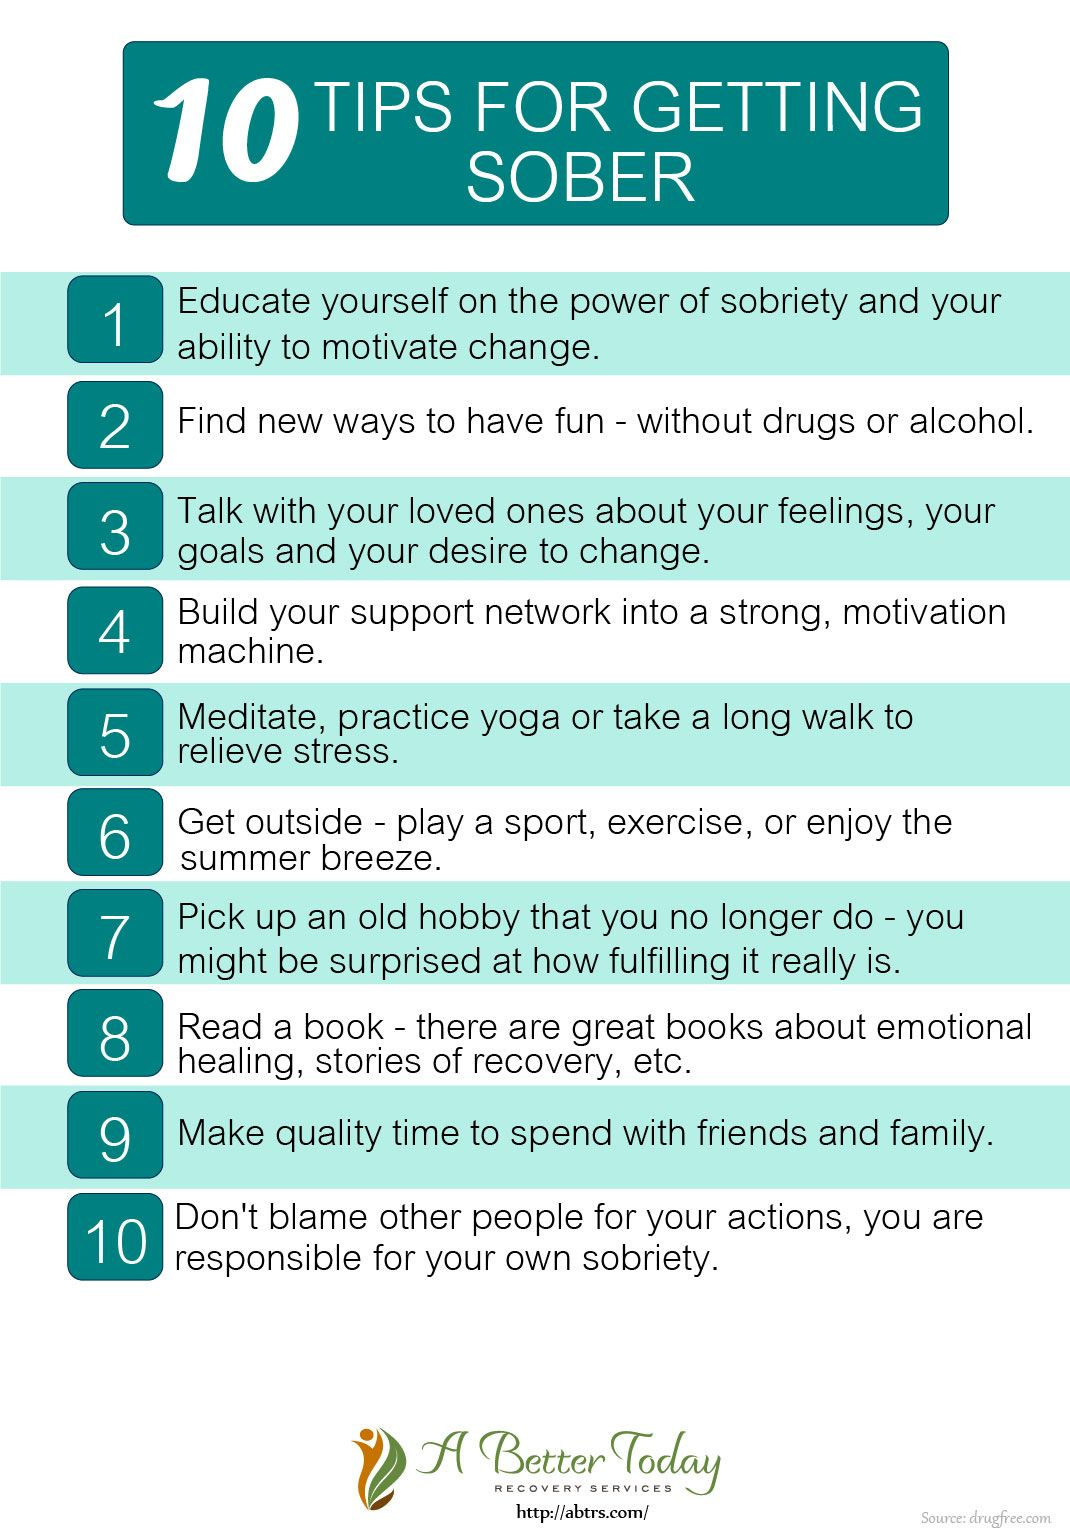 It S The Last Set Of 10 Tips For Getting Sober If You Missed Our Previous Tips You Can Visit Our Webpage Which Tips W Sober Lifestyle Getting Sober Sober